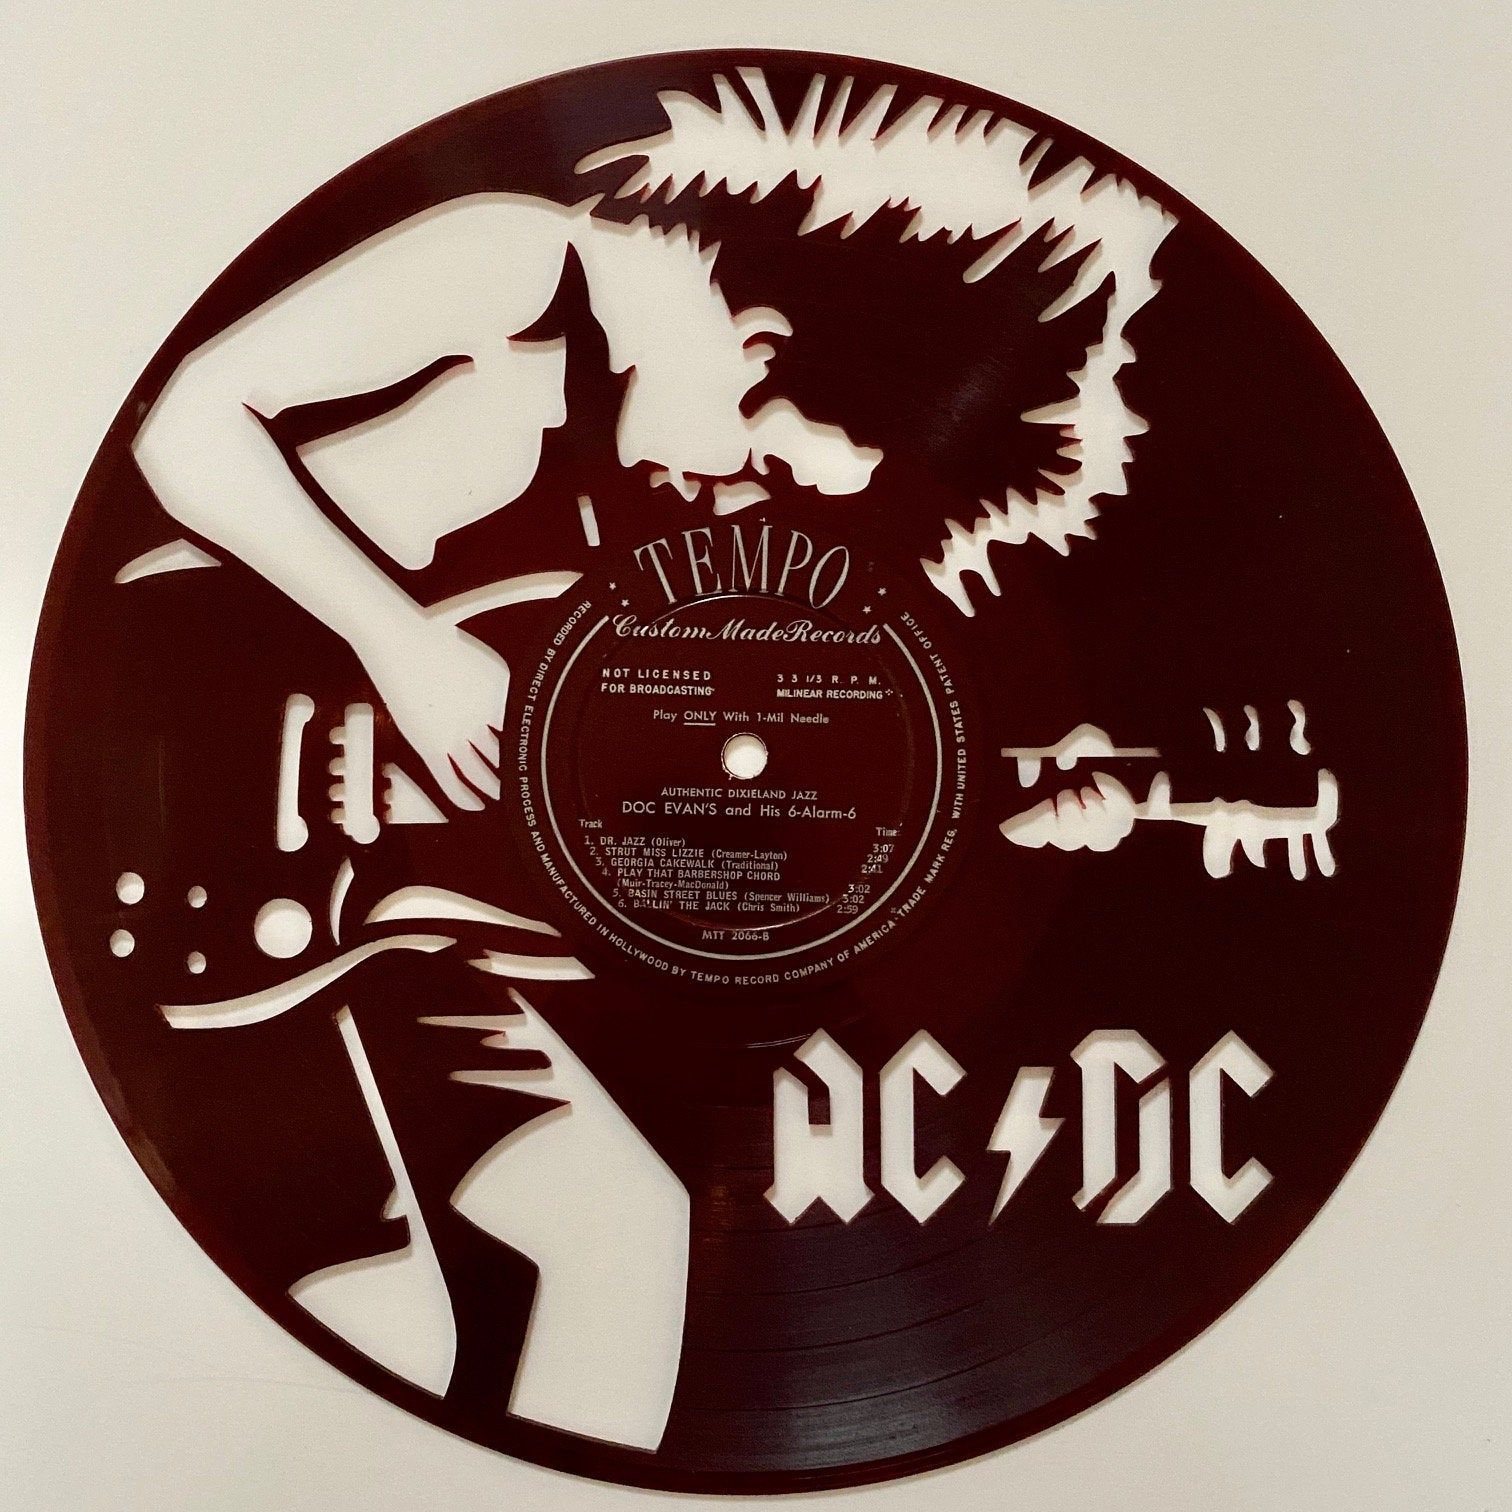 Excited To Share The Latest Addition To My Etsy Shop Ac Dc Vinyl Record Art Red Vinyl Https Etsy Me 36pmzt8 Office Vinyl Record Art Record Art Album Art